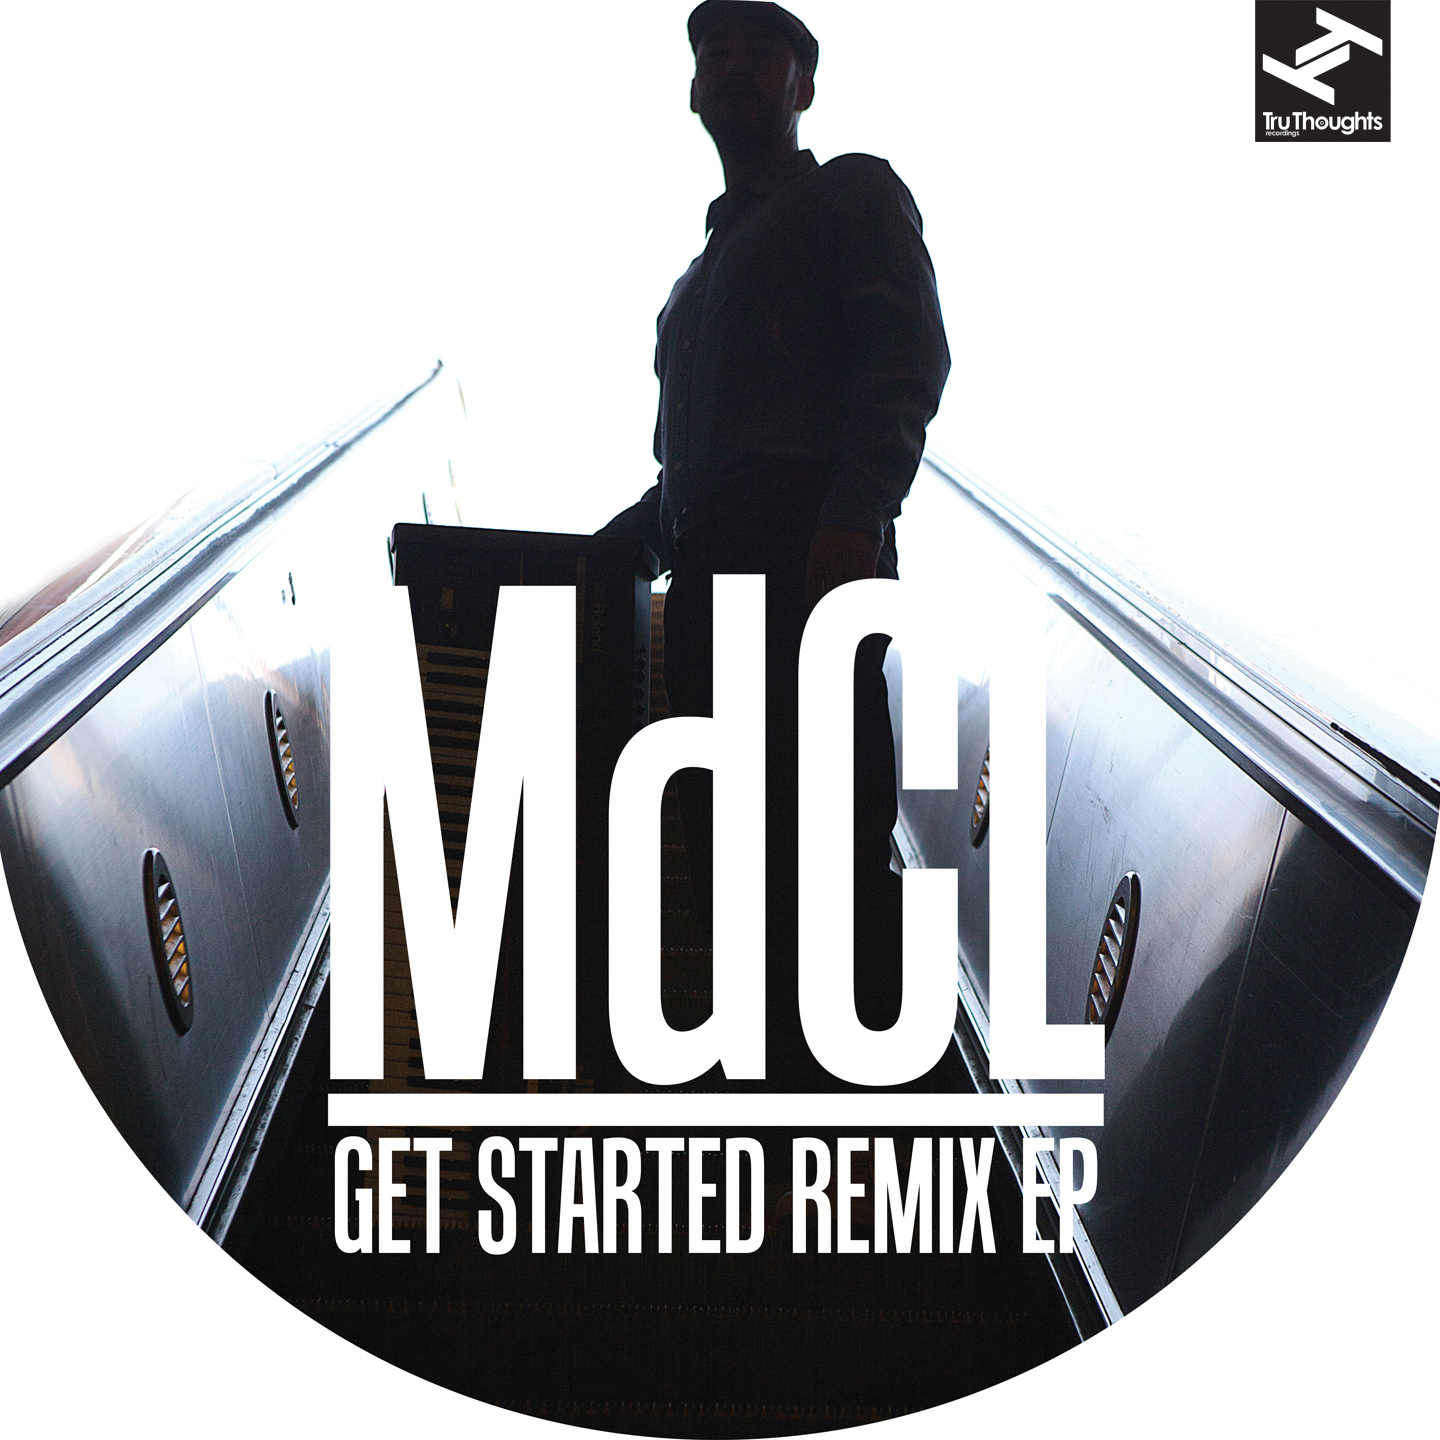 Mark de Clive Lowe – Get Started ft. Omar (Full Crate Remix) (Free Download)